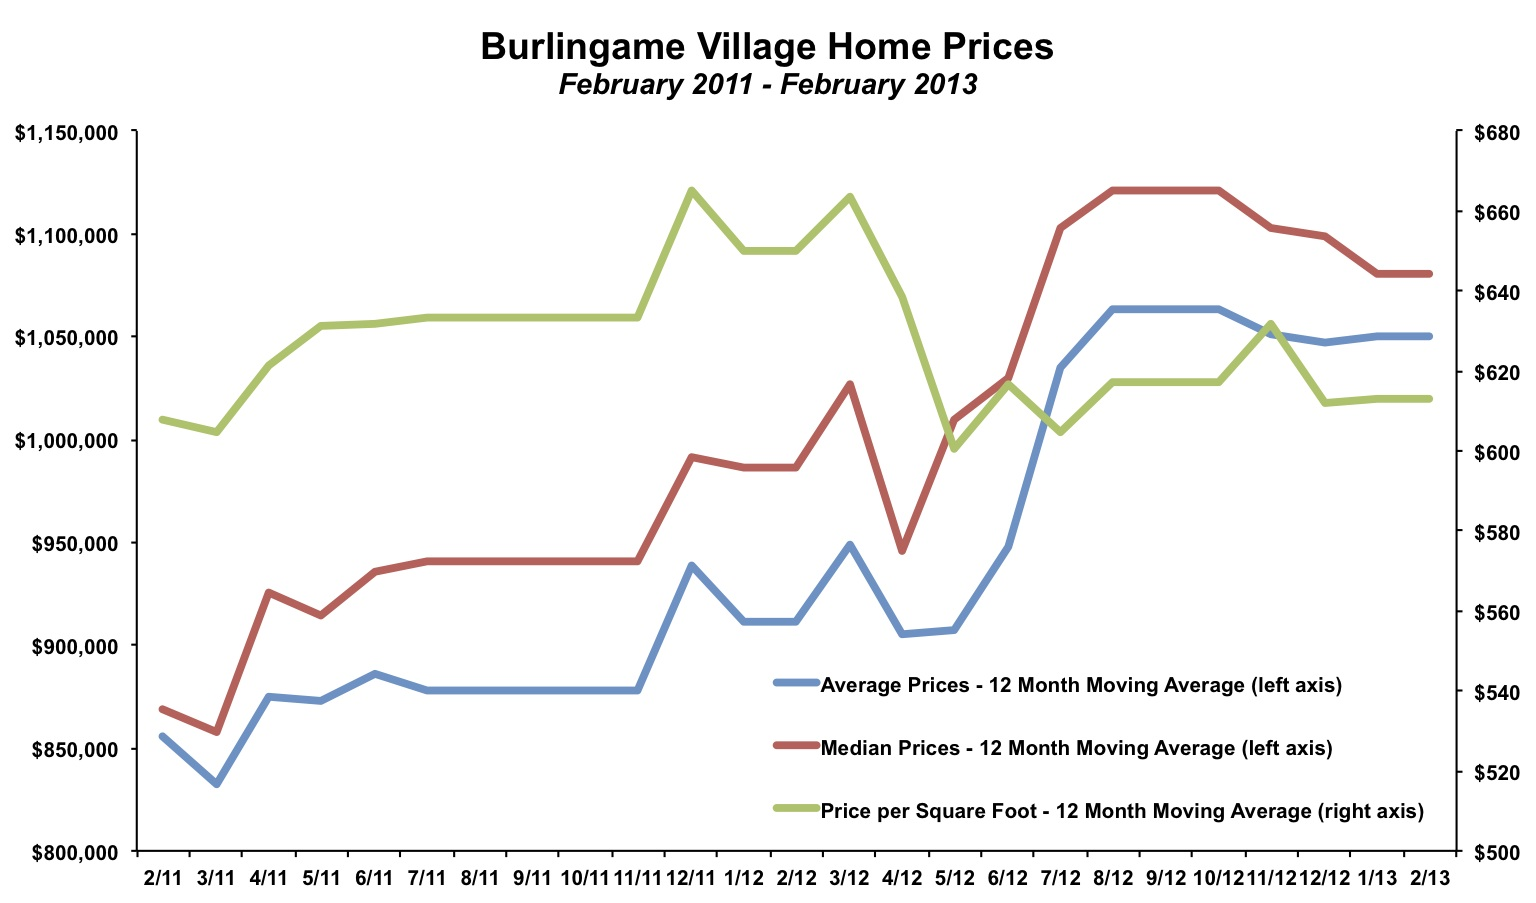 Burlingame Village Home Prices February 2013